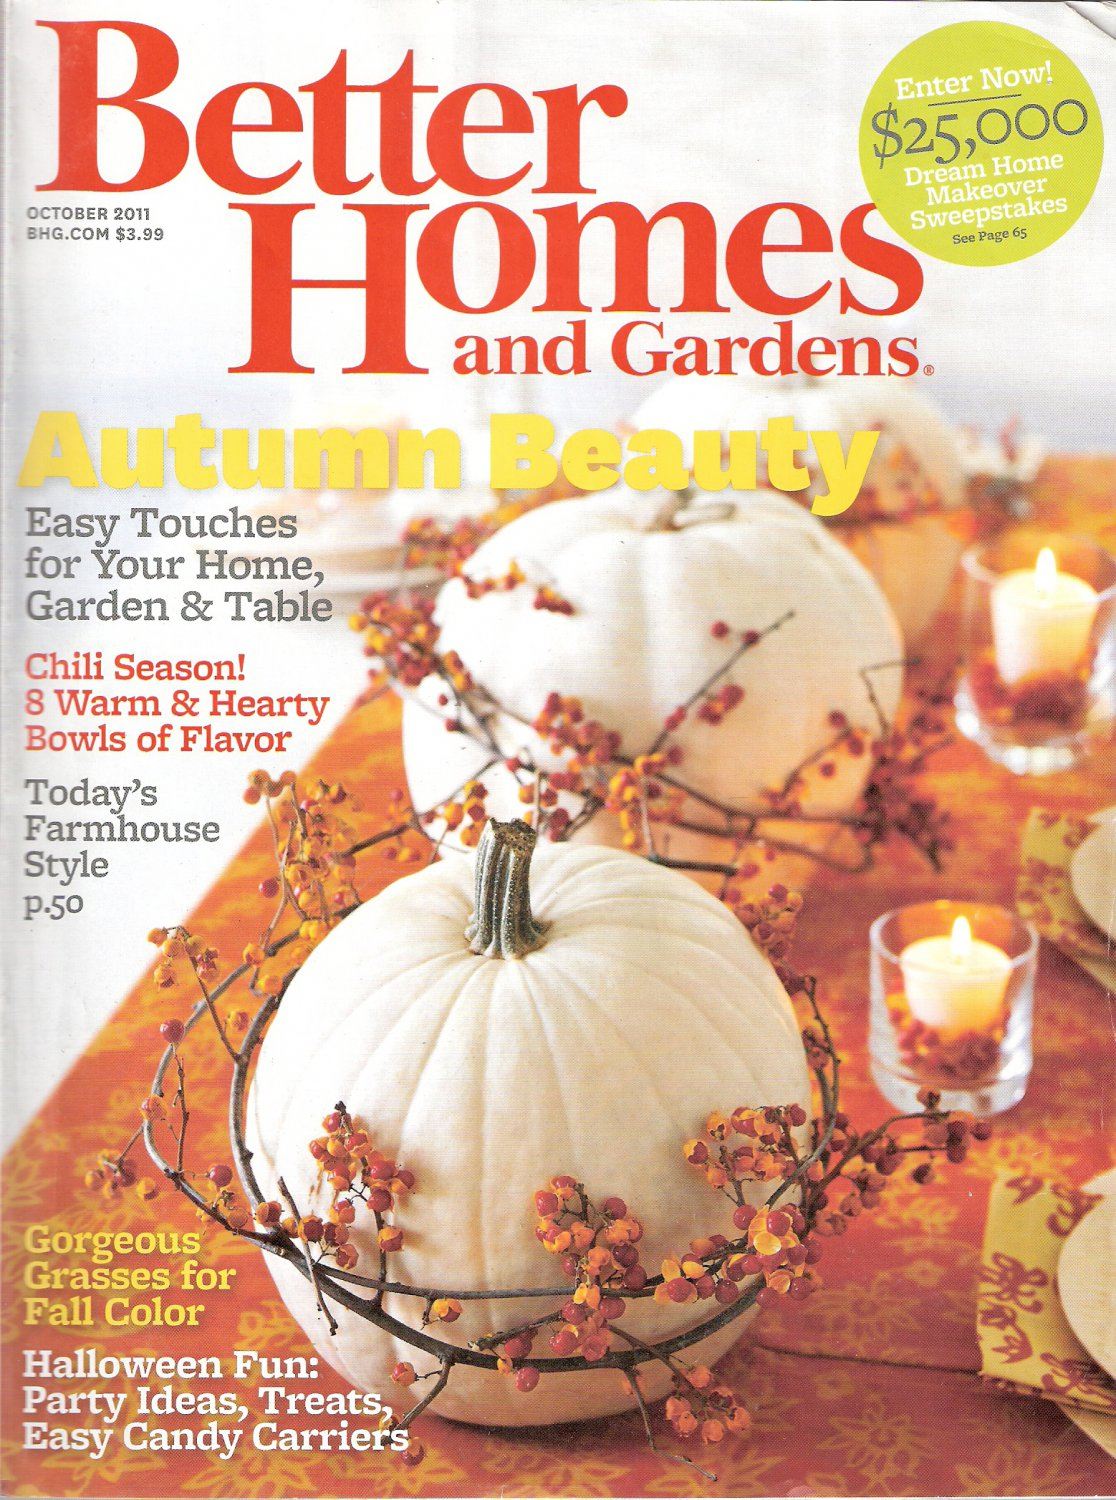 Better Homes and Gardens Magazine October 2011 Autumn Beauty